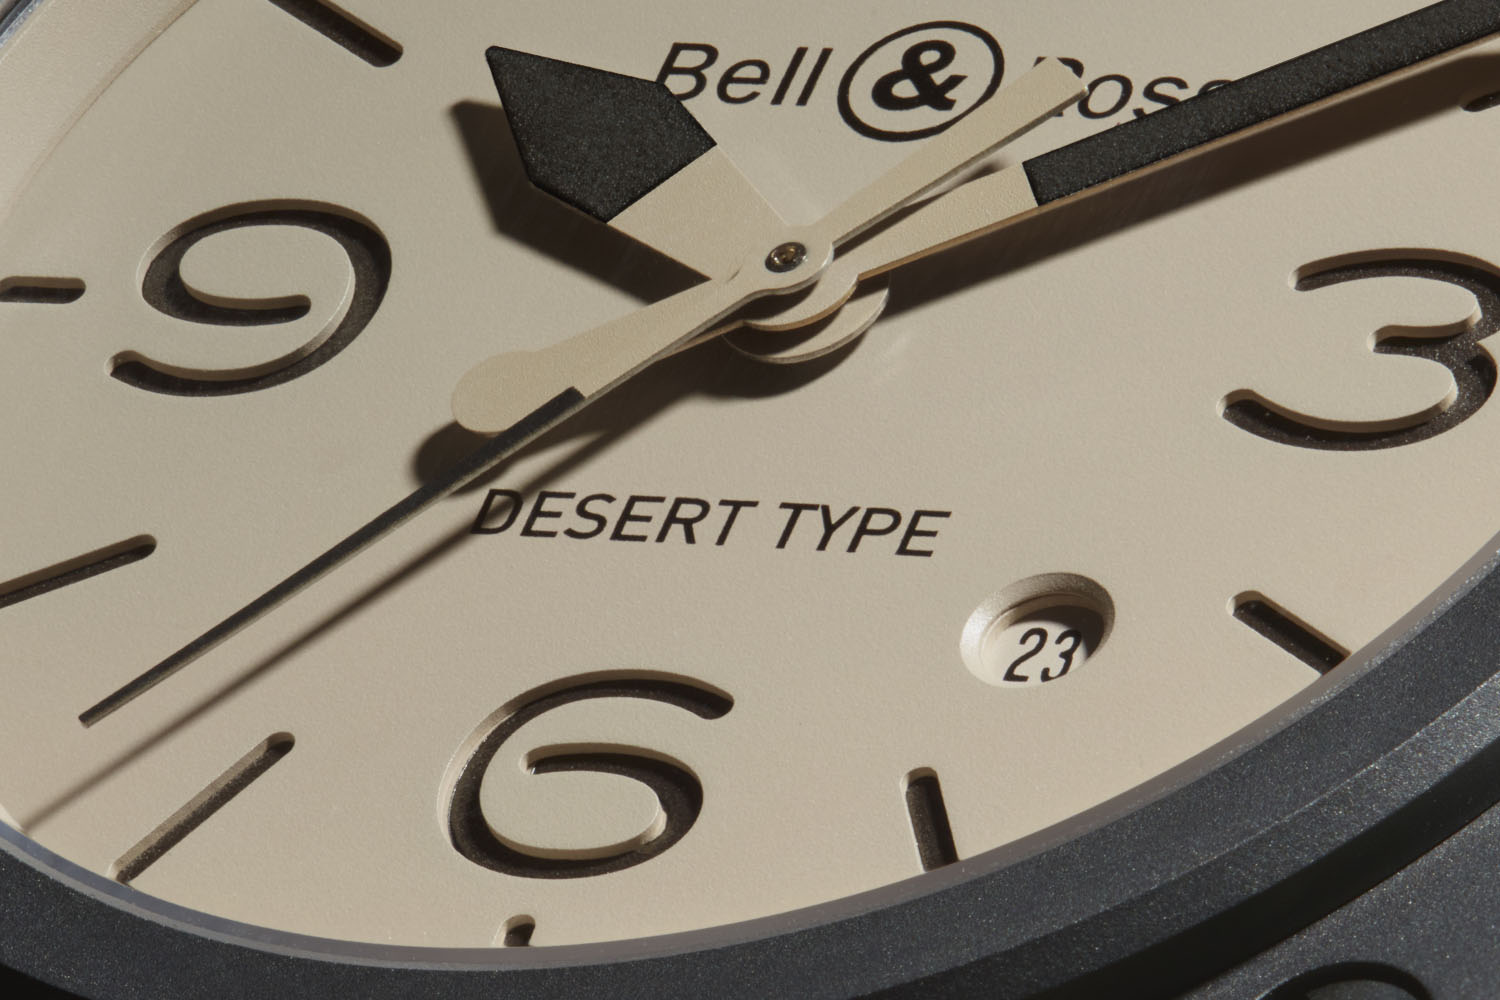 Bell & Ross BR03 92 Desert Type Ceramic Sandwich dial Military - Pre-Baselworld 2016